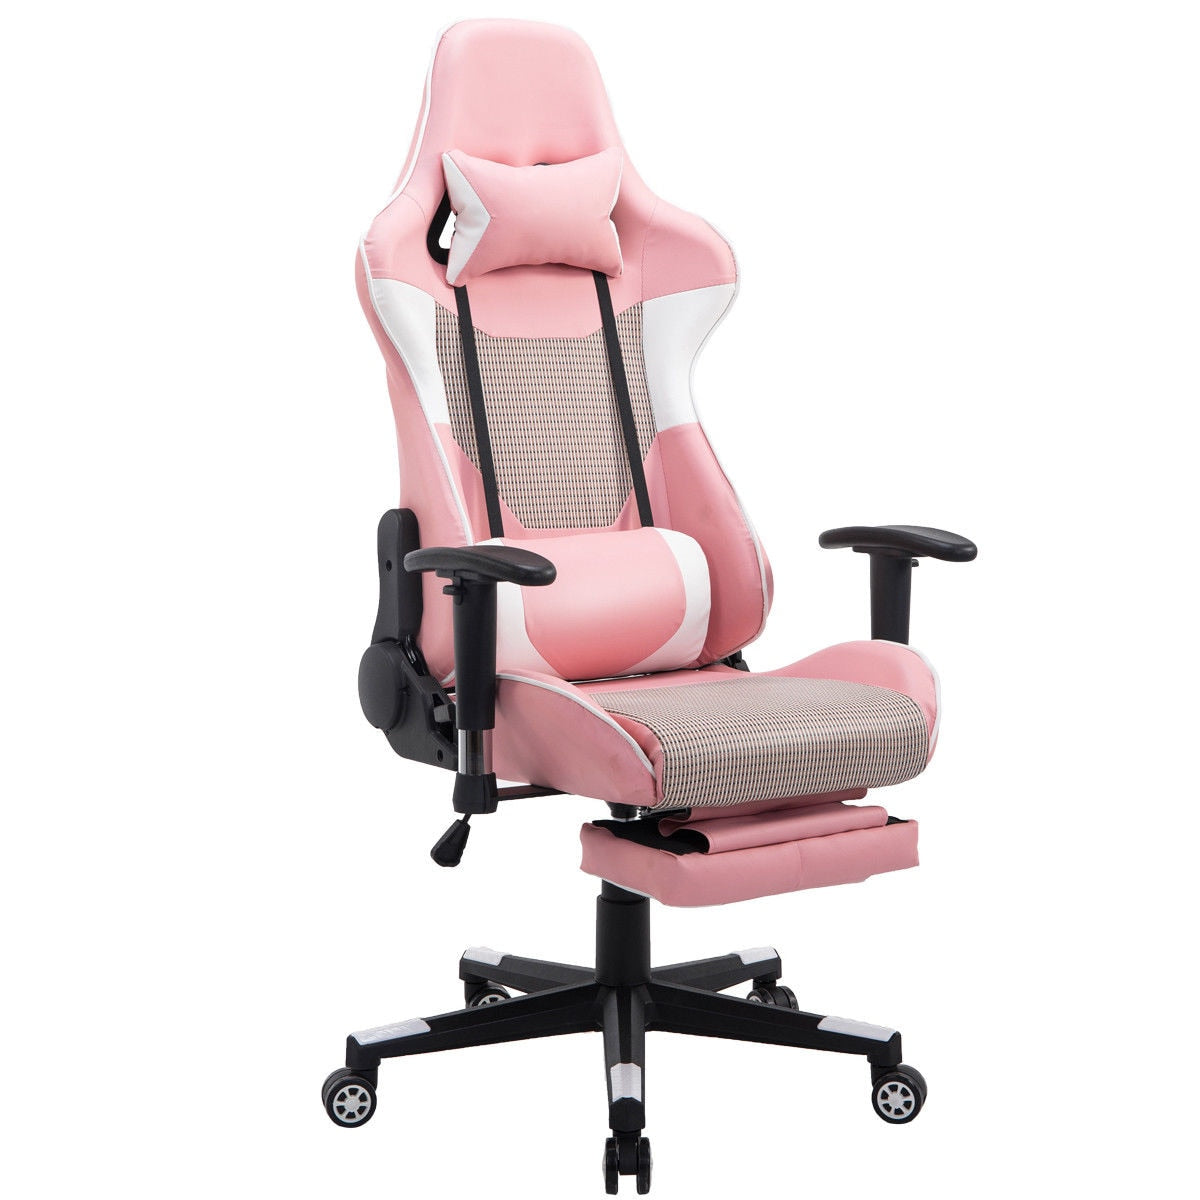 Stupendous Bubbles M2 0 Reclining Gaming Chair Cjindustries Chair Design For Home Cjindustriesco